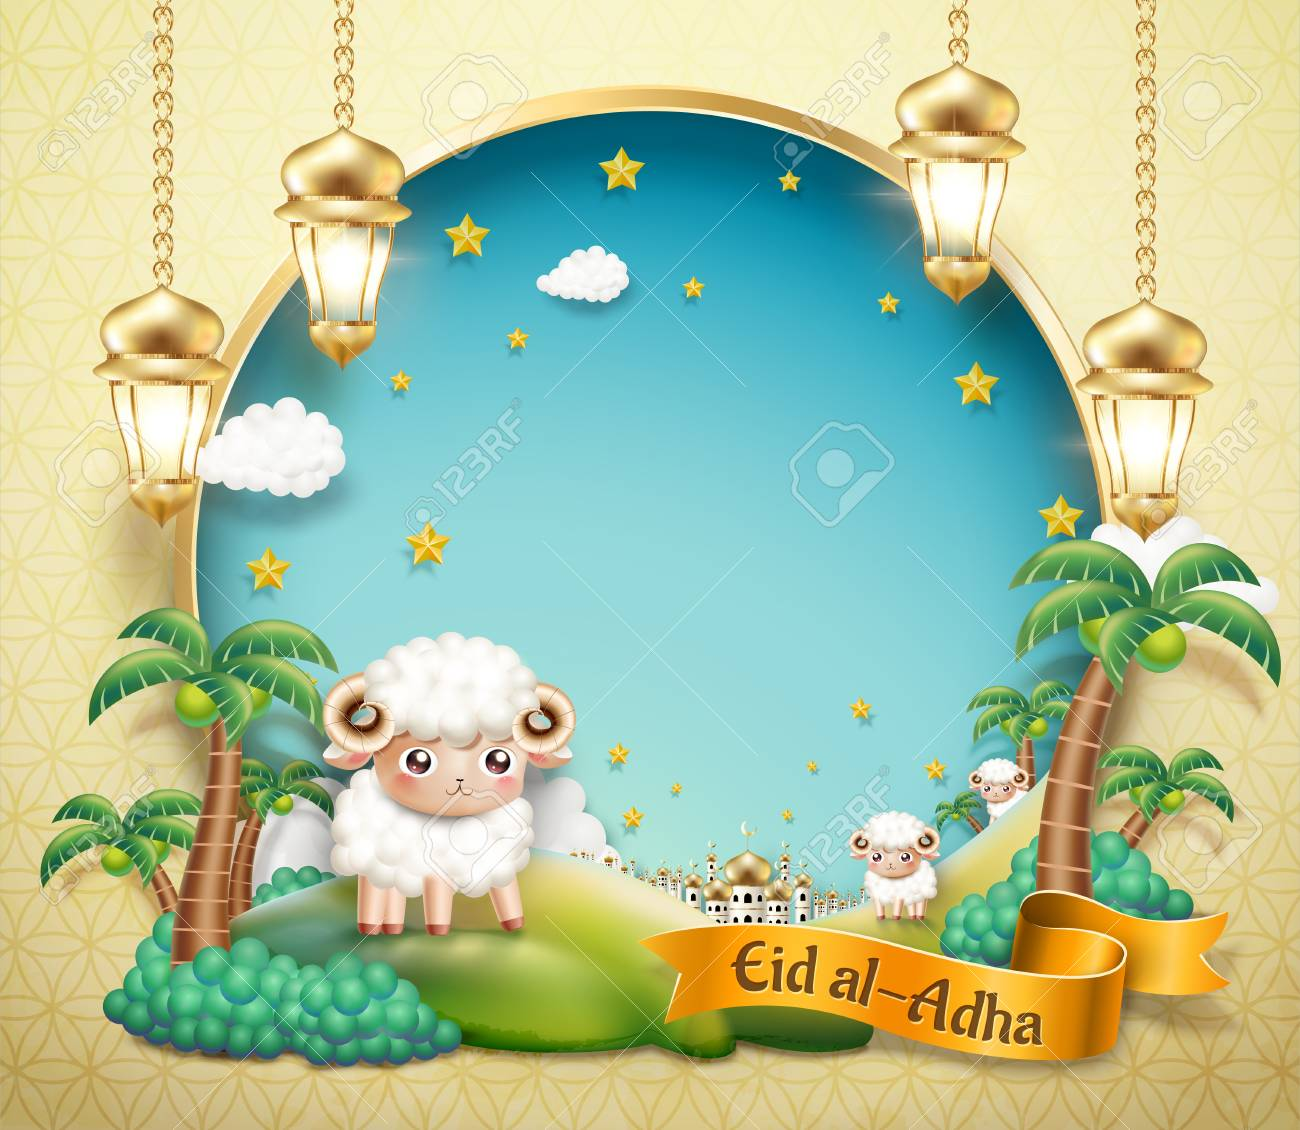 Eid Al Adha design with lovely sheep in oasis with blue sky copy space for greeting words in 3d illustration - 105556361